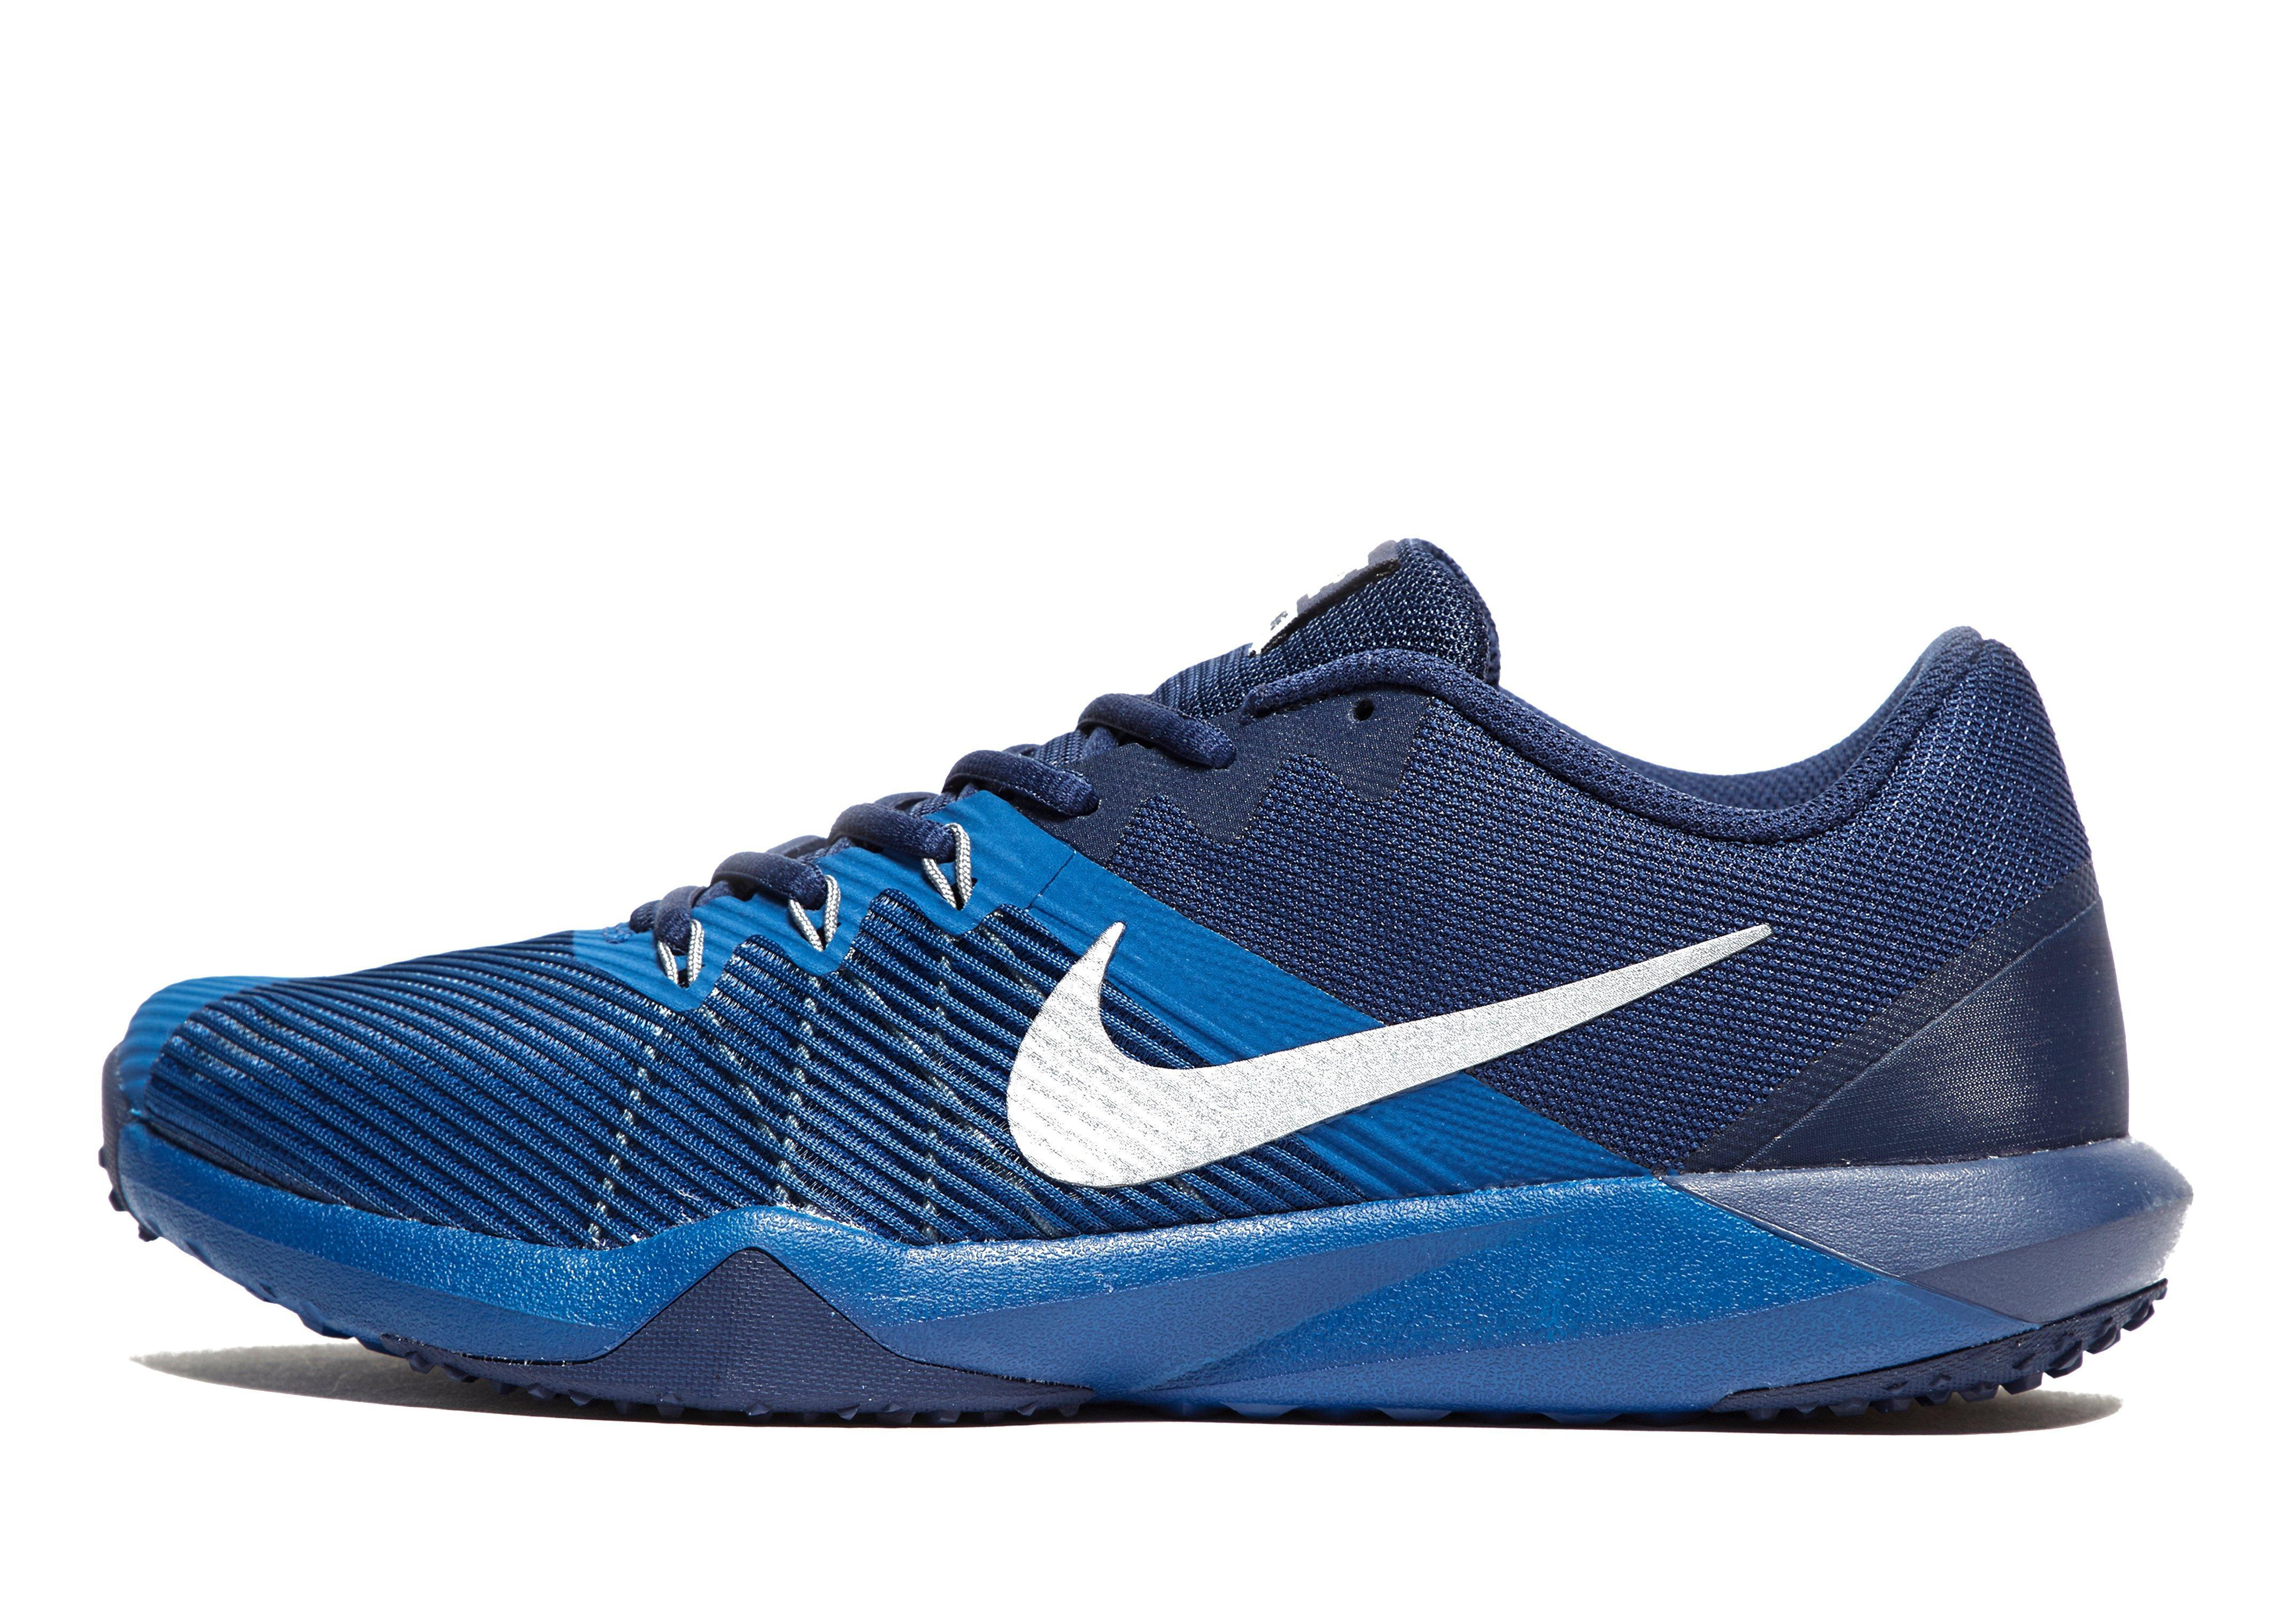 Nike Exercise Shoes With Lateral Support